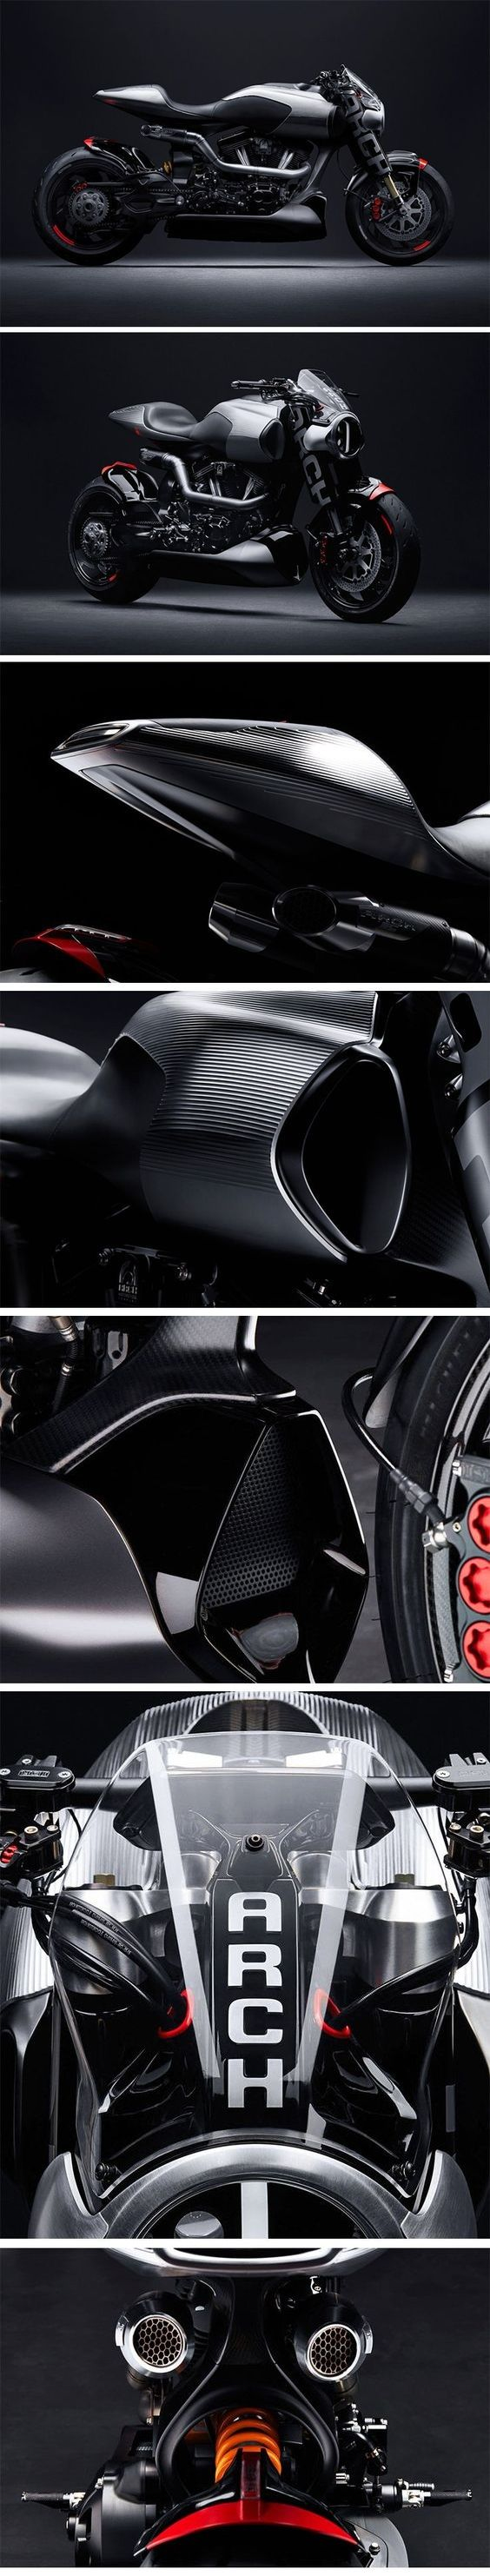 The Arch Motorcycle Method 143 Concept Bike by Keanu Reeves.  This 143ci. / 2343cc powered S&S Cycle Monster will have a limited production run of 23 units.